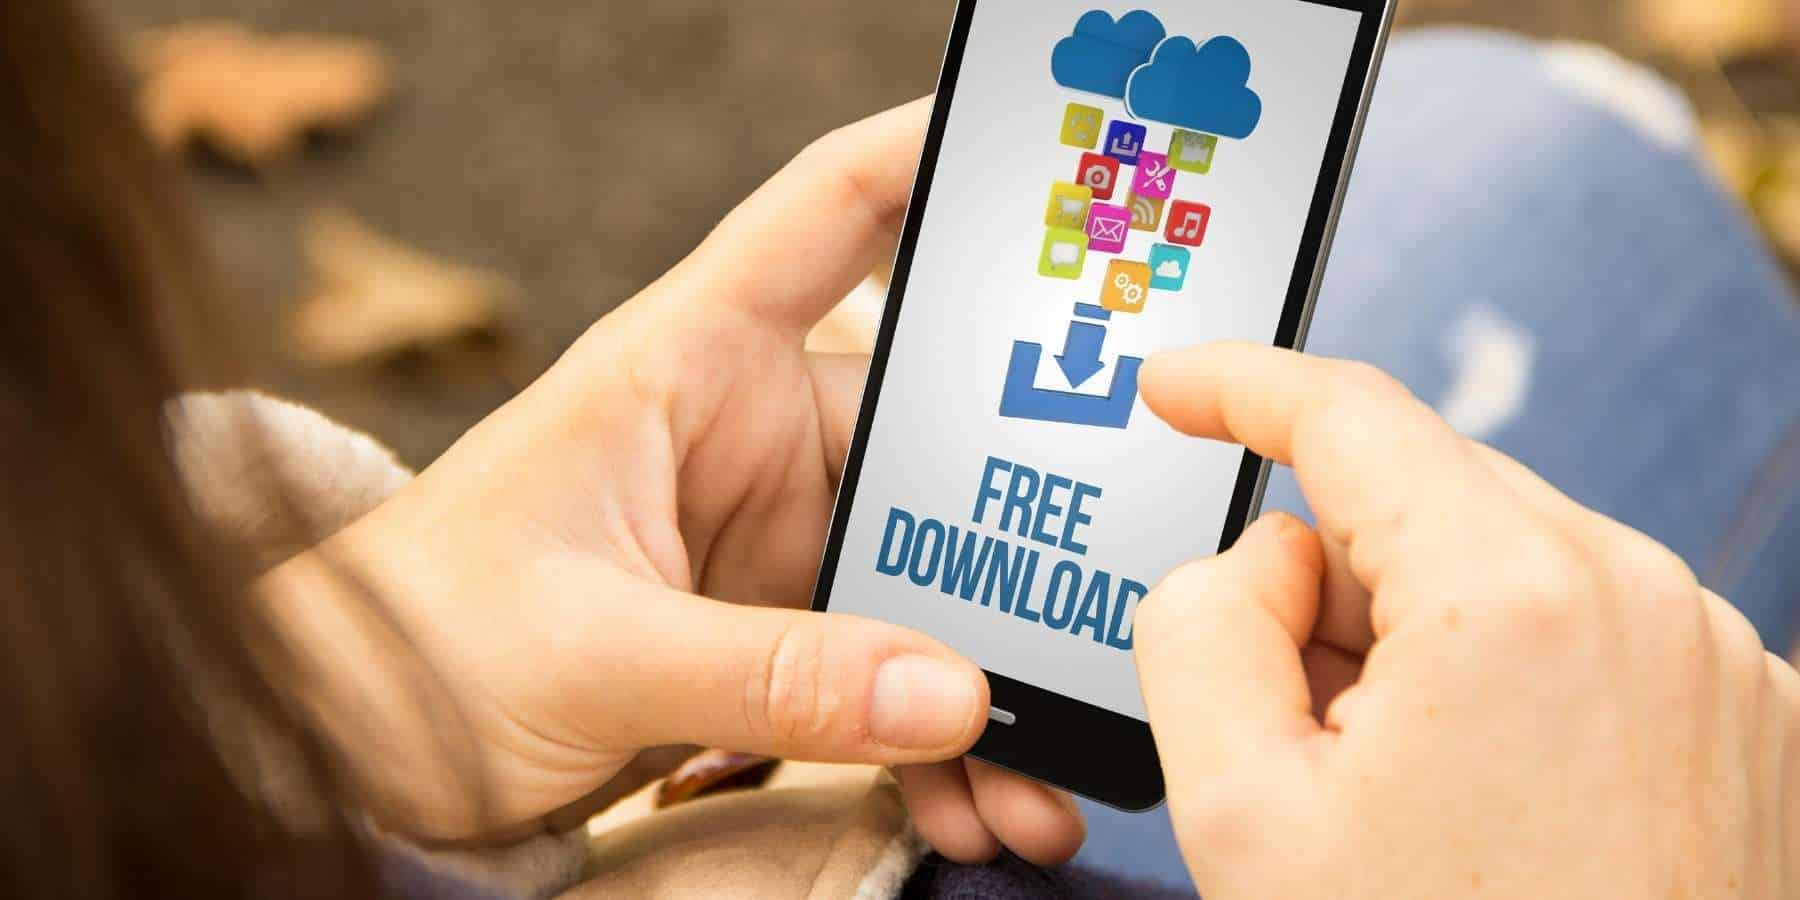 Find and open downloads on Android